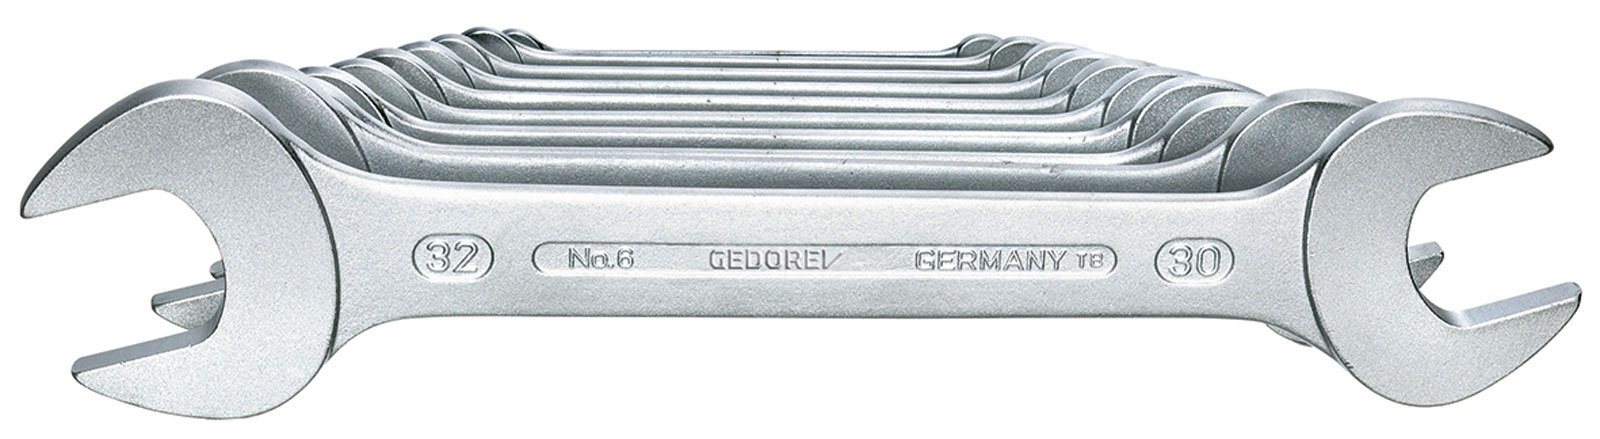 GEDORE 6-122 ISO Double open ended spanner set 12 pcs 6-34 mm